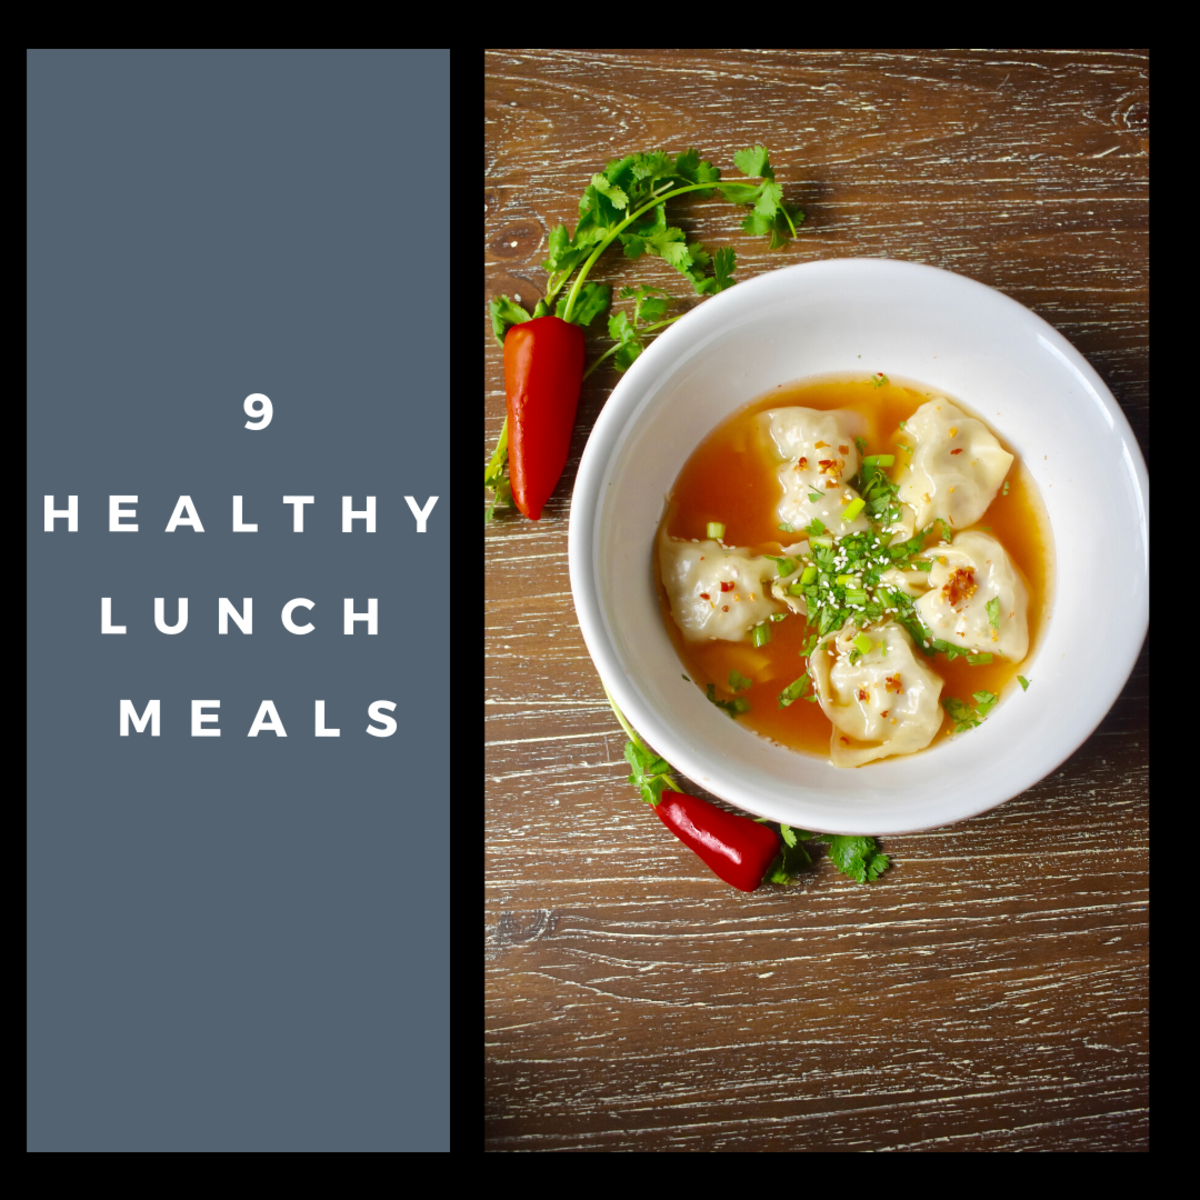 My Favorite Weight Watchers Recipes: 9 Healthy Lunch Meals